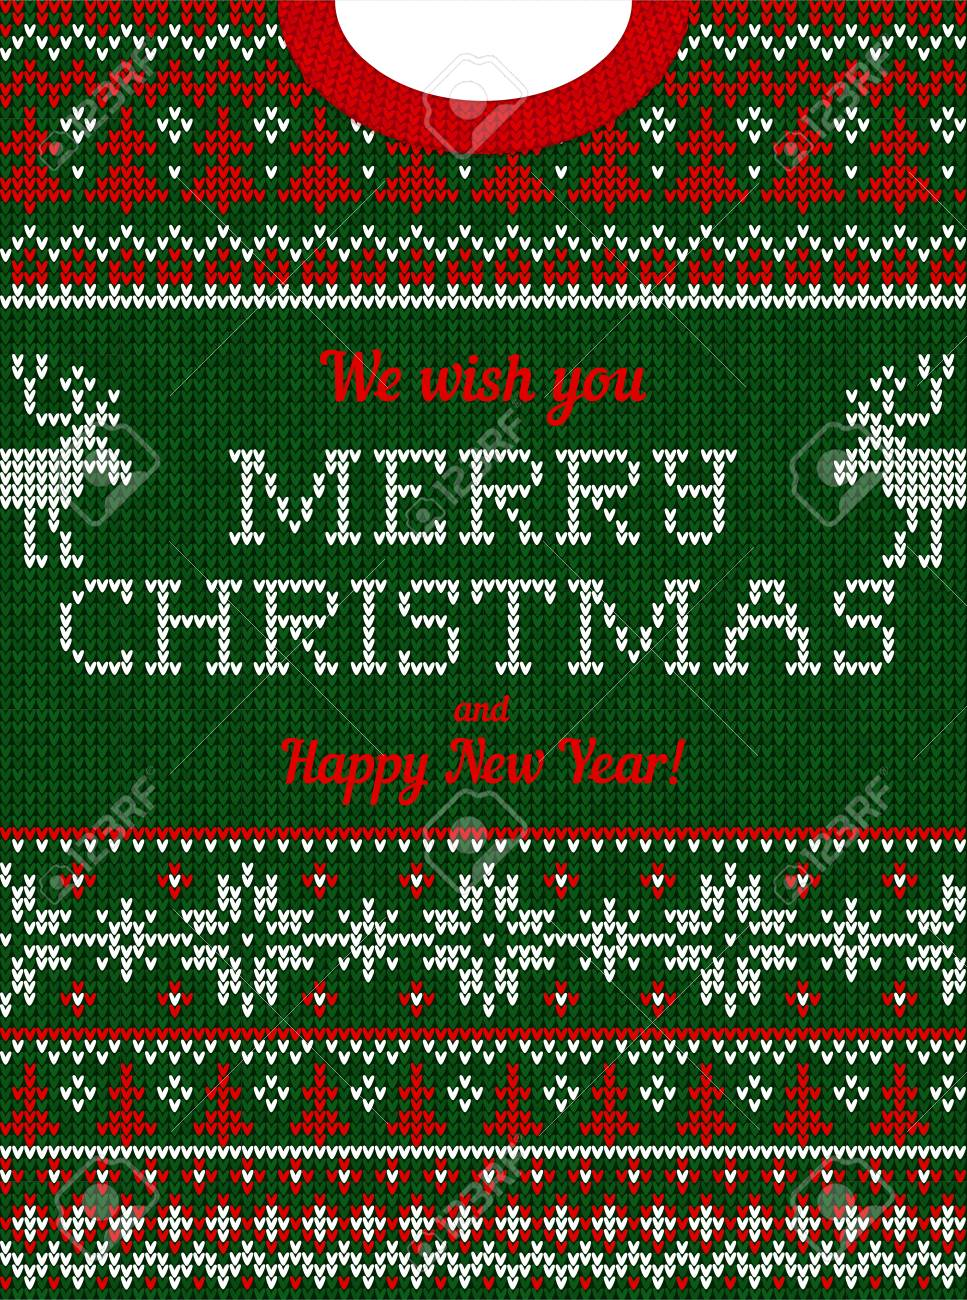 a9af38c9f19a6 Ugly sweater Christmas party invite. Vector illustration Handmade knitted  background pattern with deers  christmas